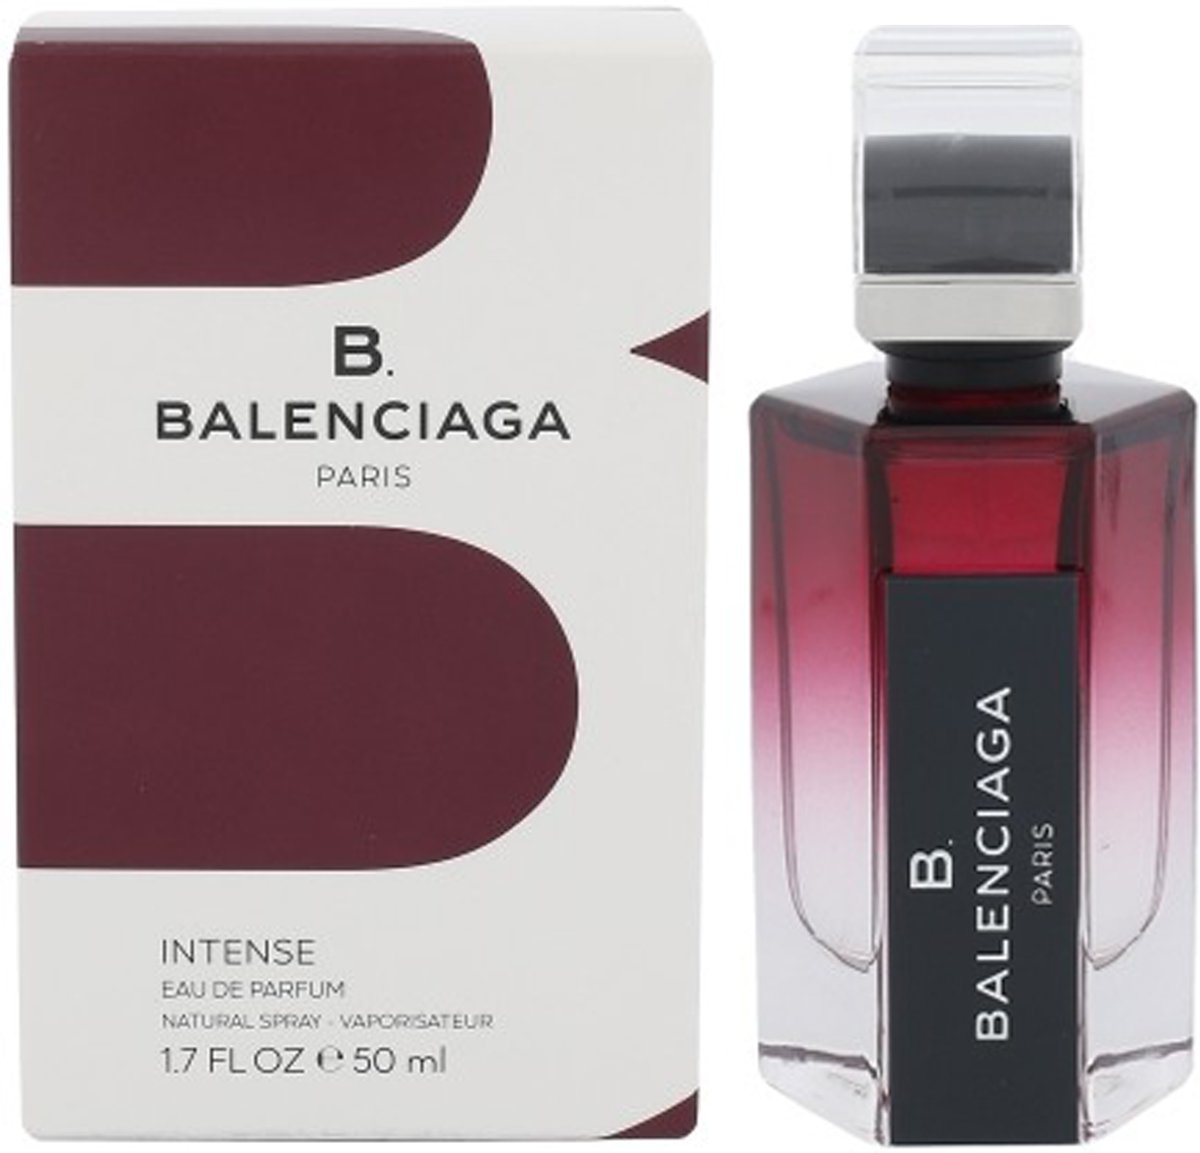 B. Balenciaga Intense 50ml EDP Spray